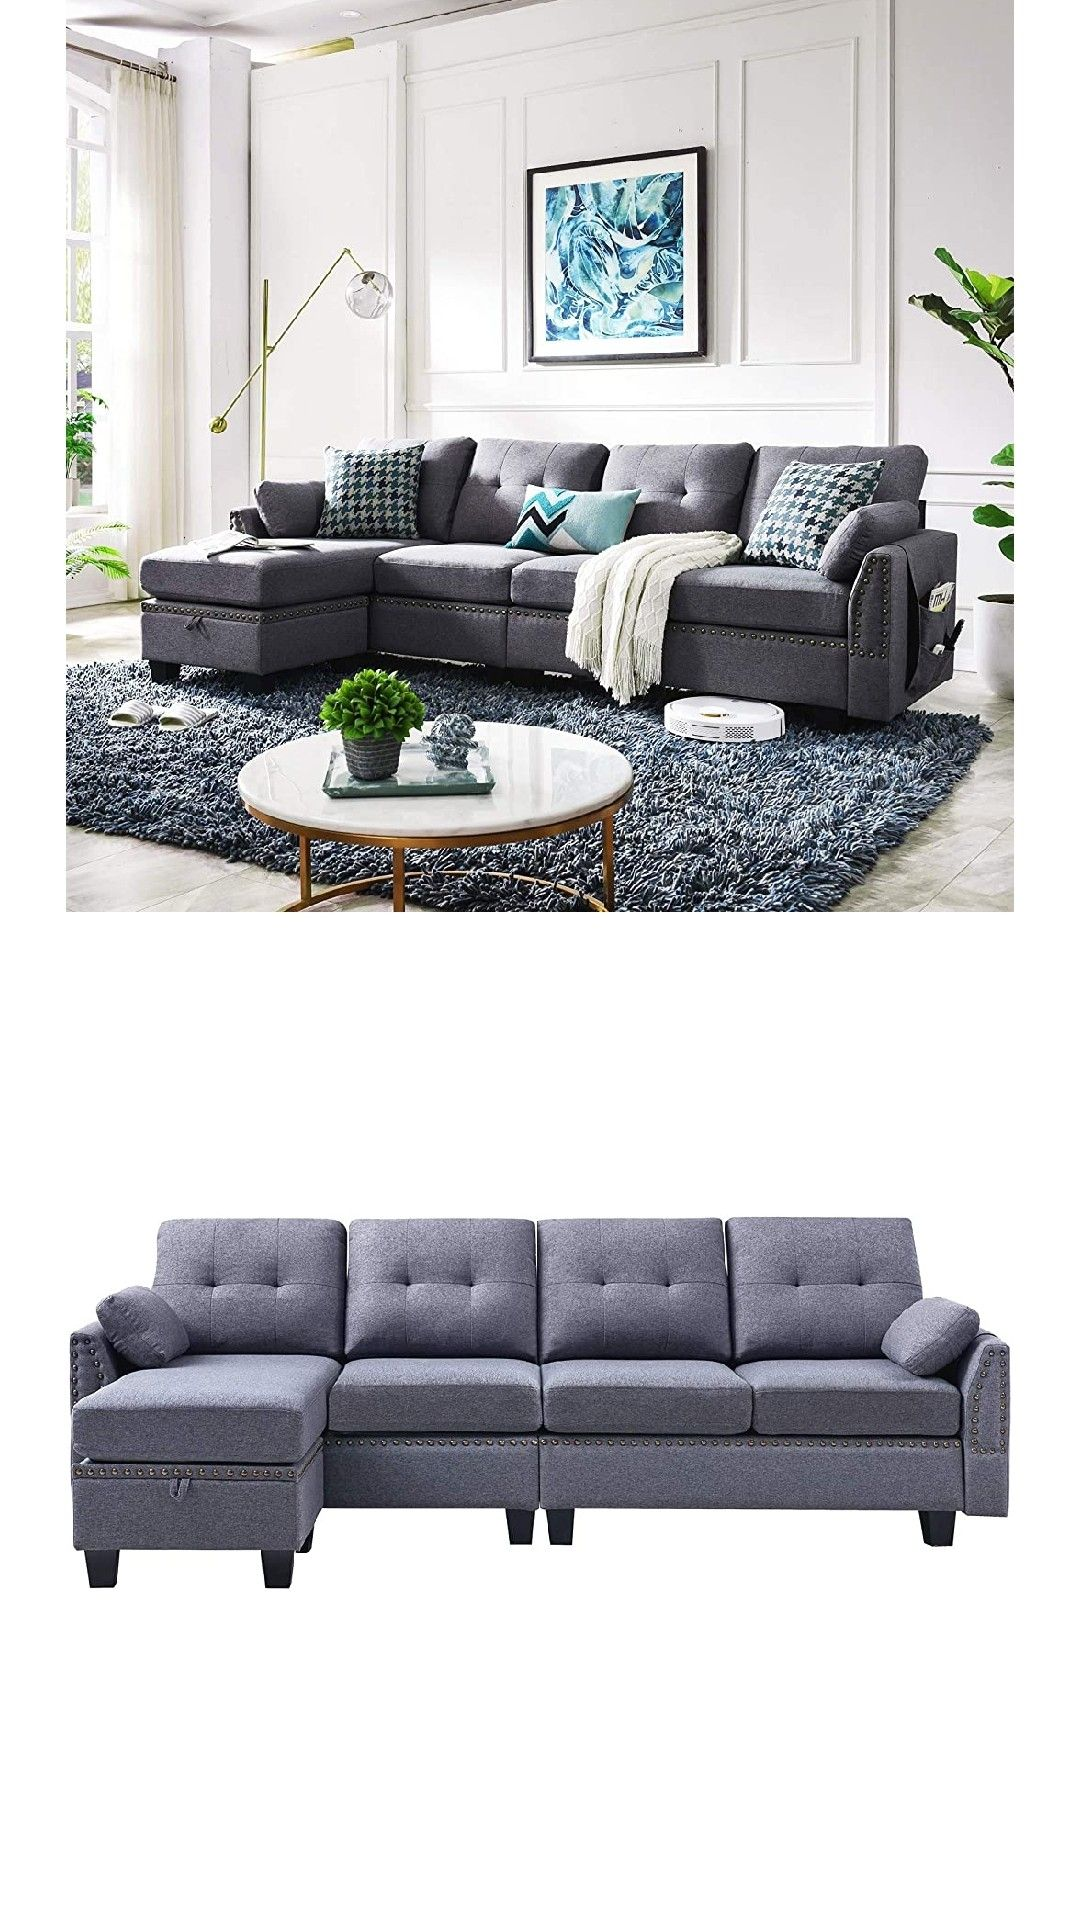 Honbay Reversible Sectional Sofa Couch For Living Room In 2020 L Shaped Sofa Sectional Sofa Sectional Sofa Couch